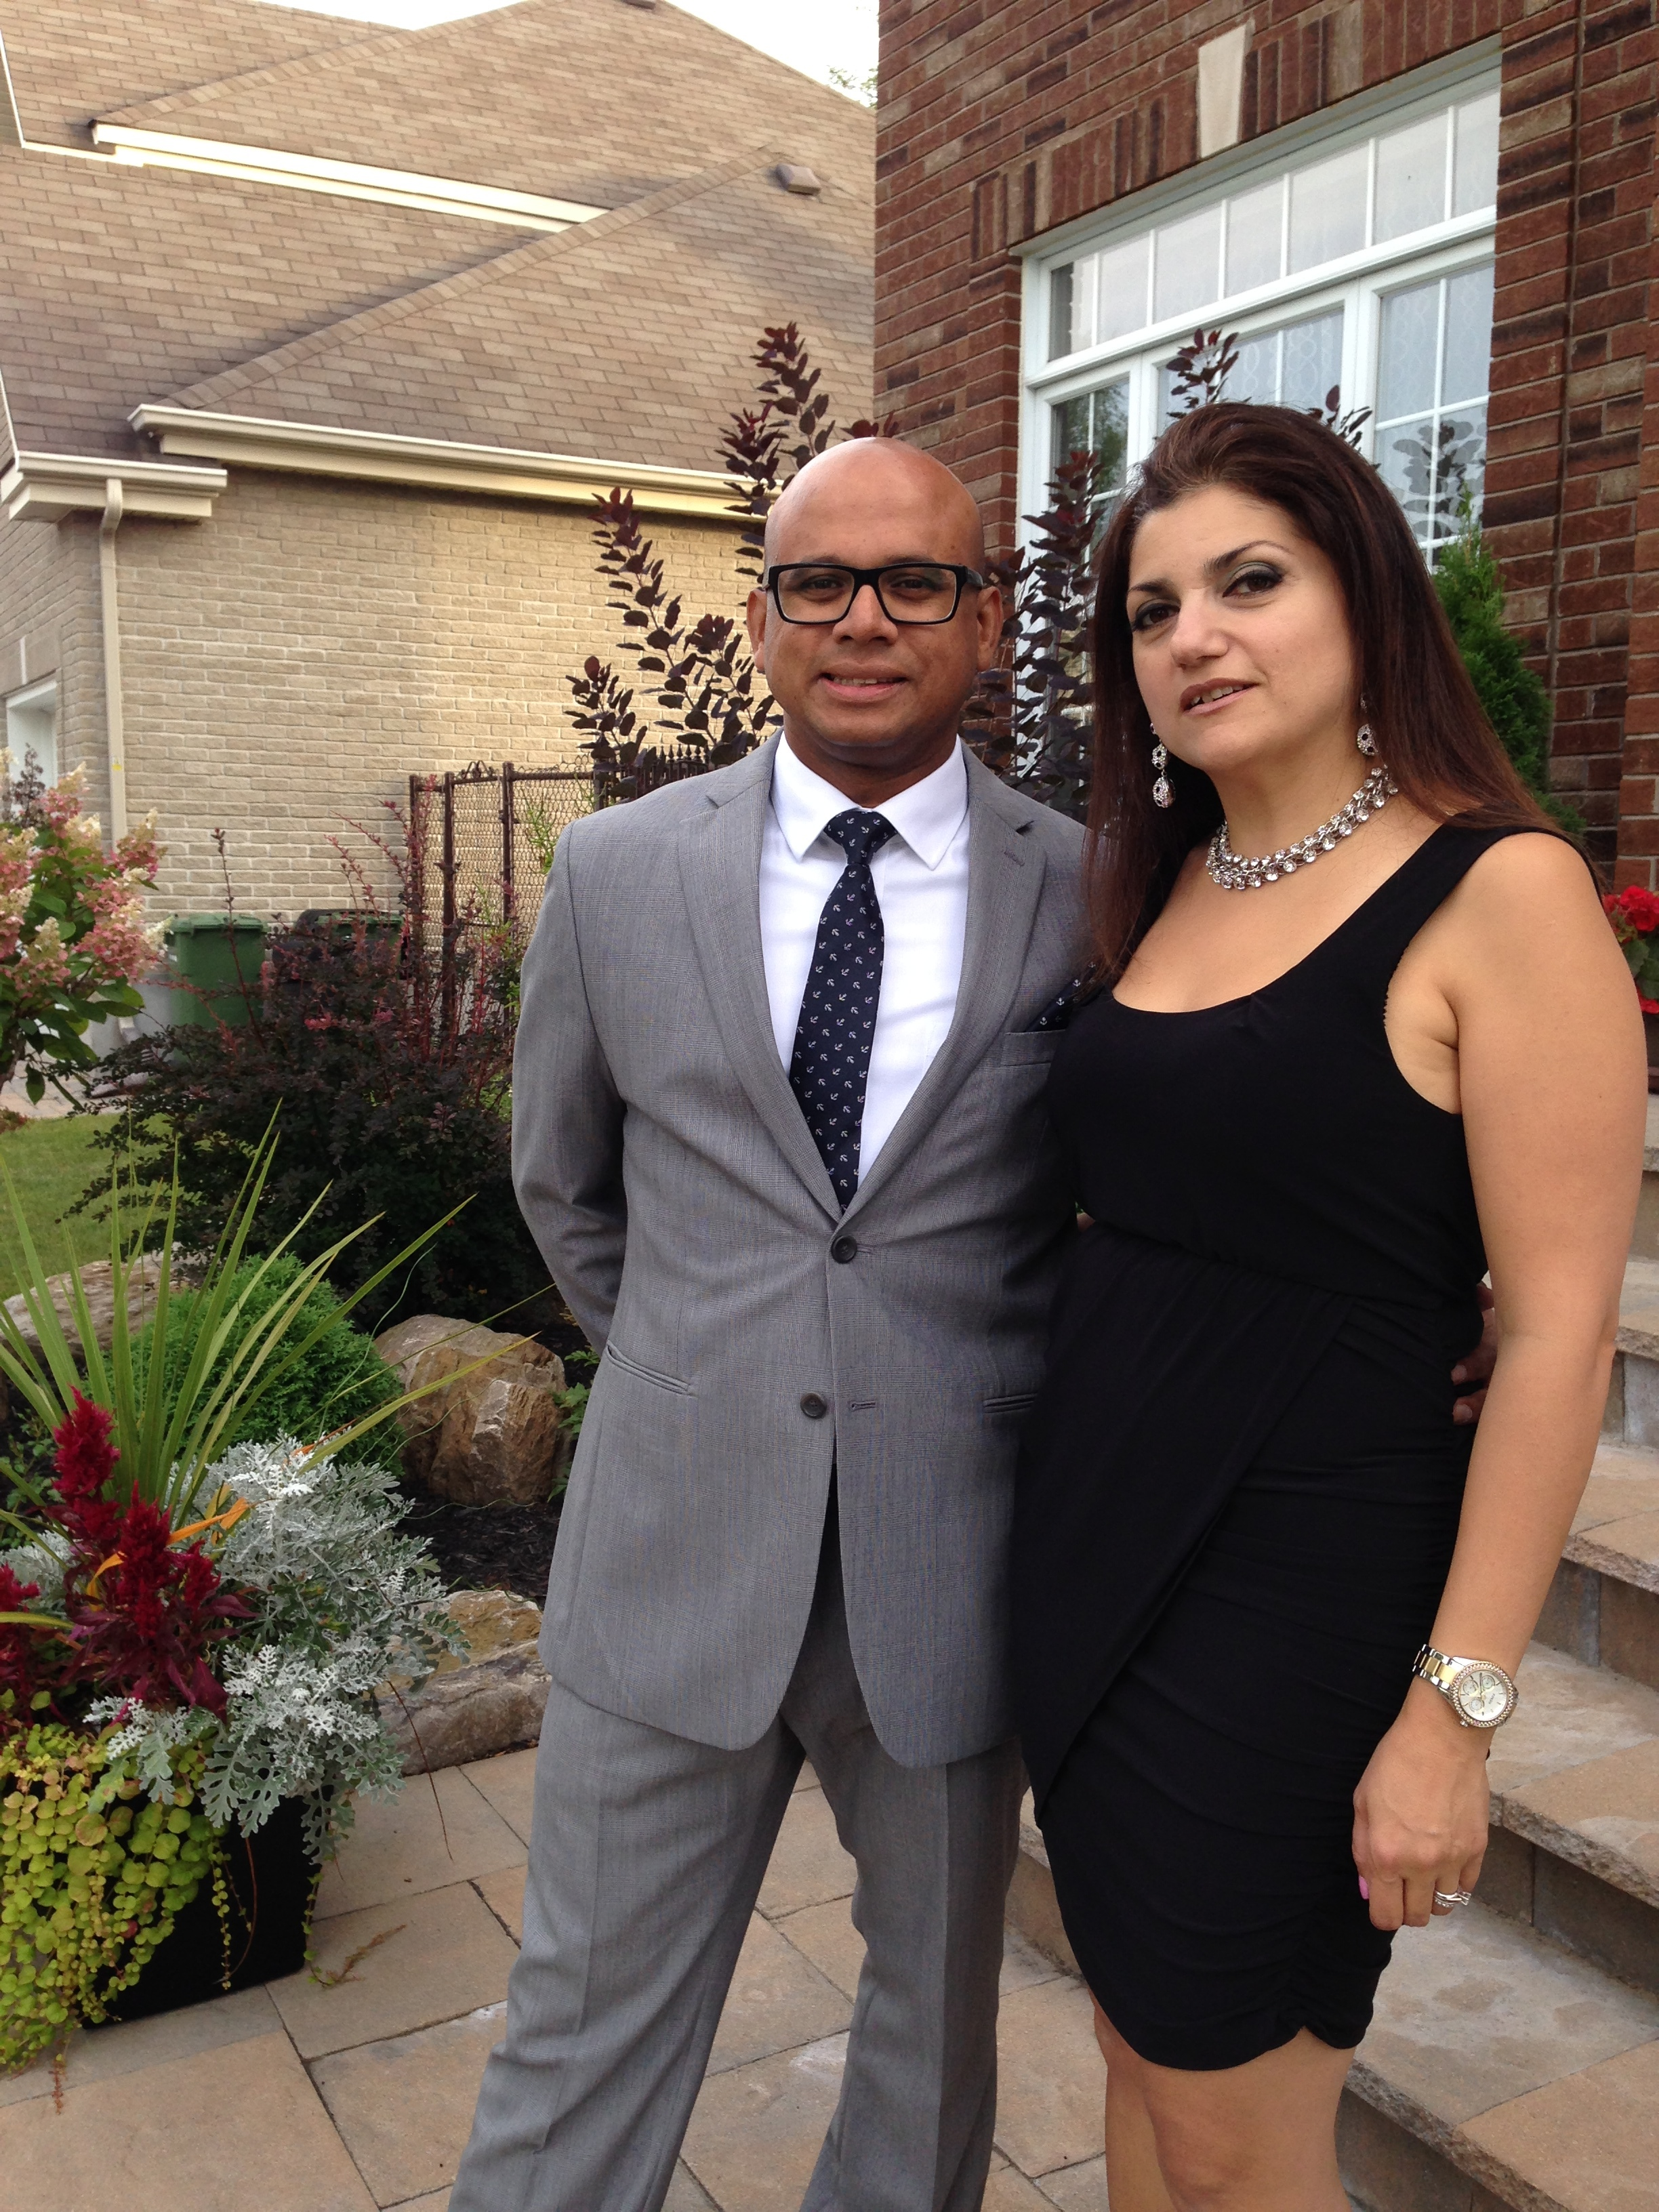 August 2014 on my way to my cousin's wedding with my husband Ashiq.I was 4 months into the Weight Watchers program and had already lost 8 lbs..